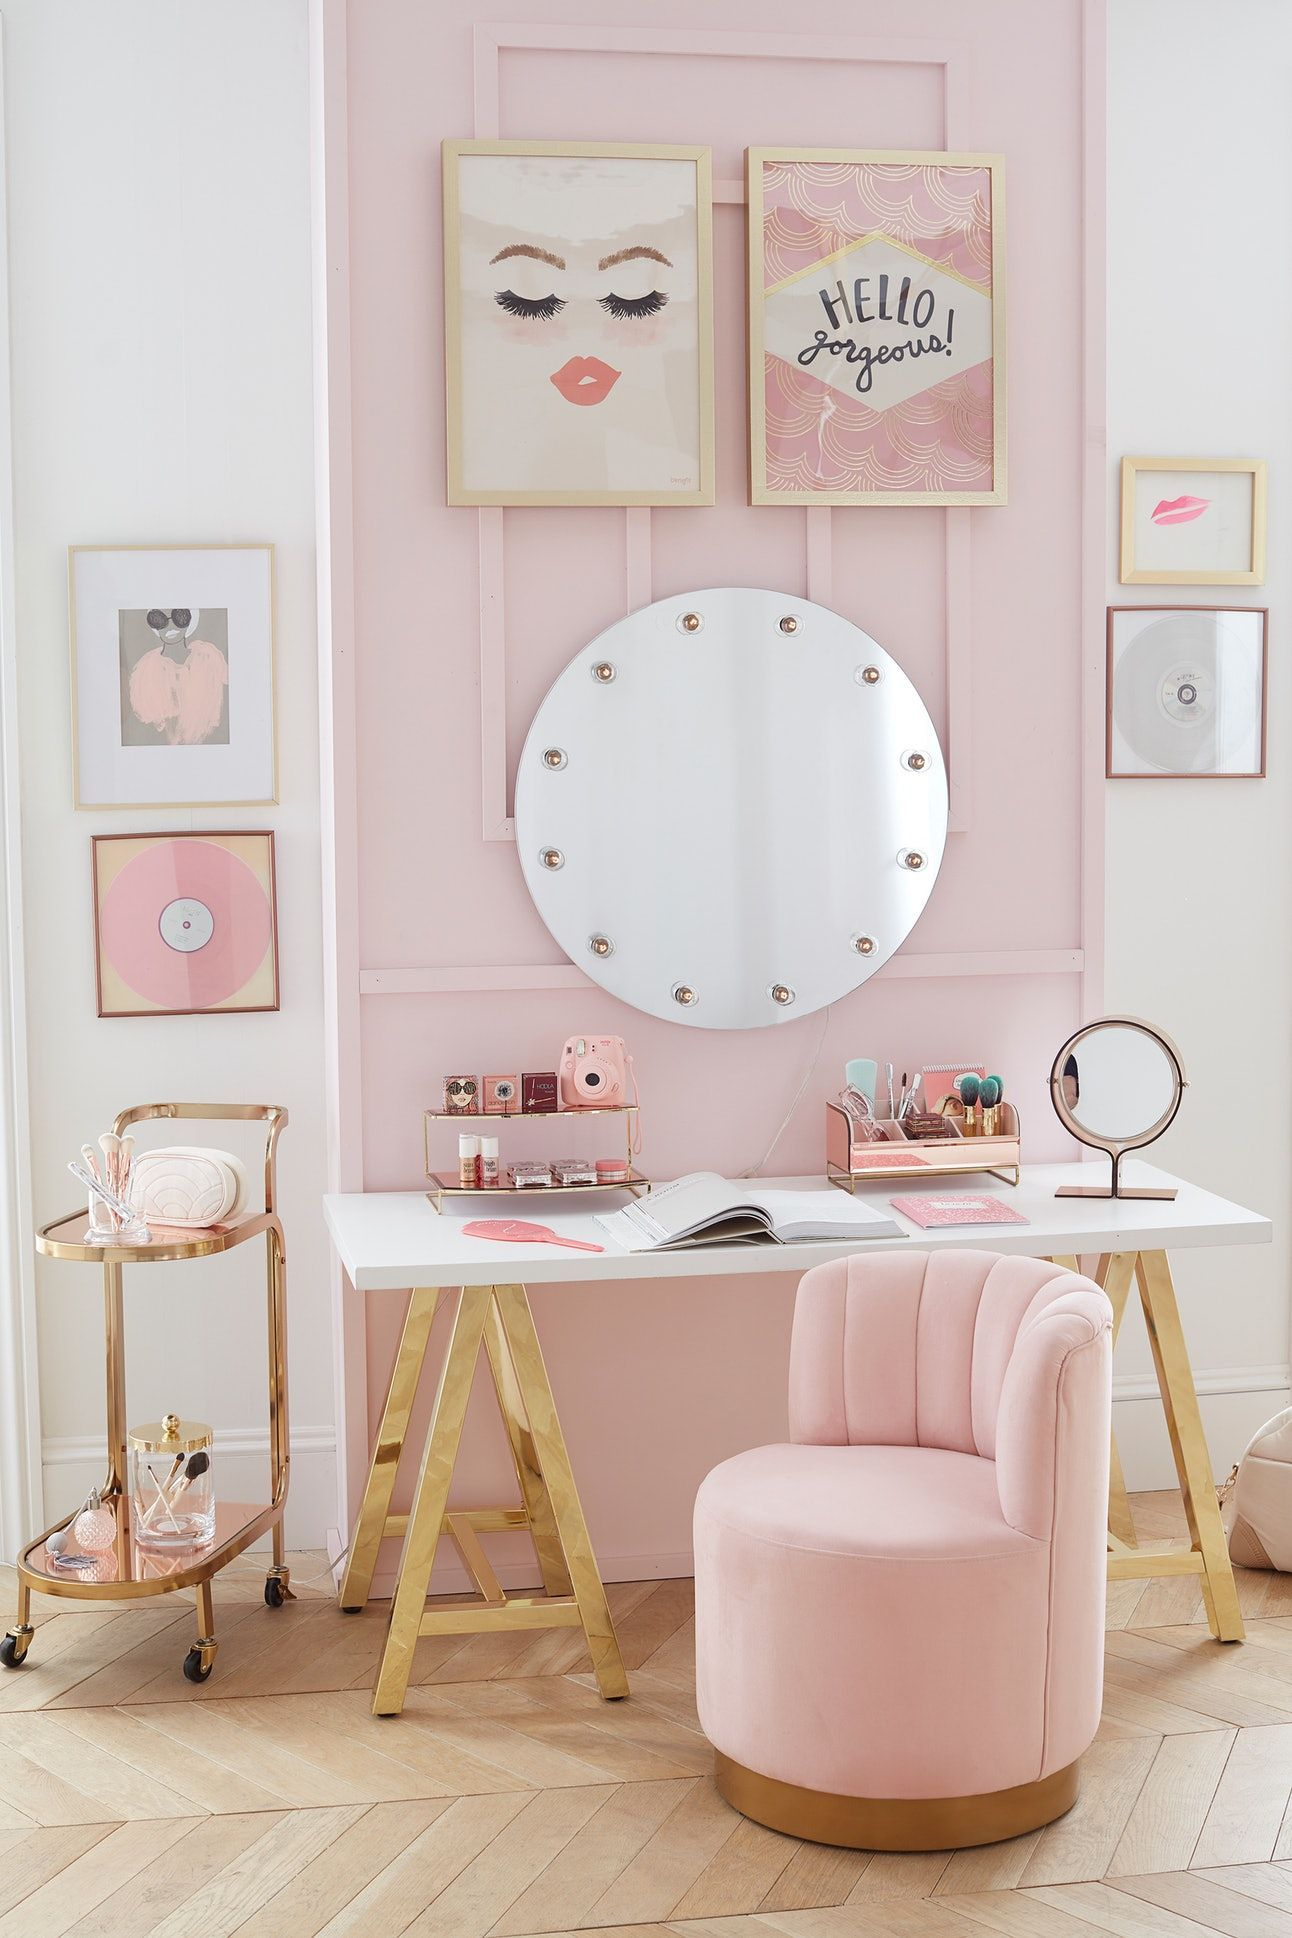 15 Target Home Decor Products Launching In Fall 2018 That ...